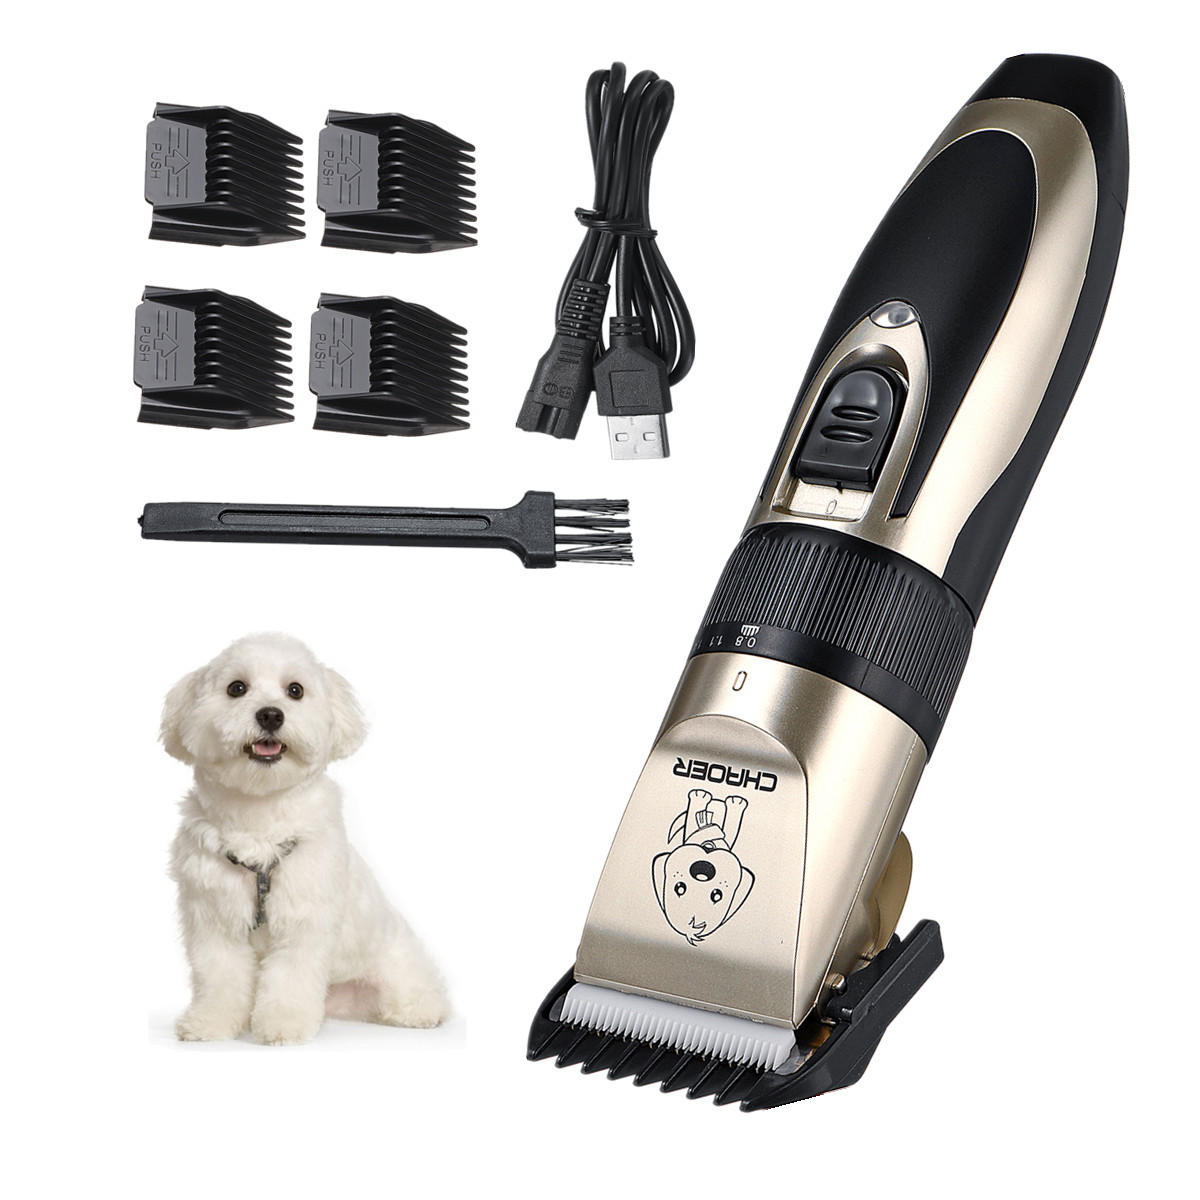 [USA DIRECT] Pet ricaricabile USB Capelli Clipper Cat Dog Trimmer Kit Pet Grooming Forbice Accessori per animali portatili